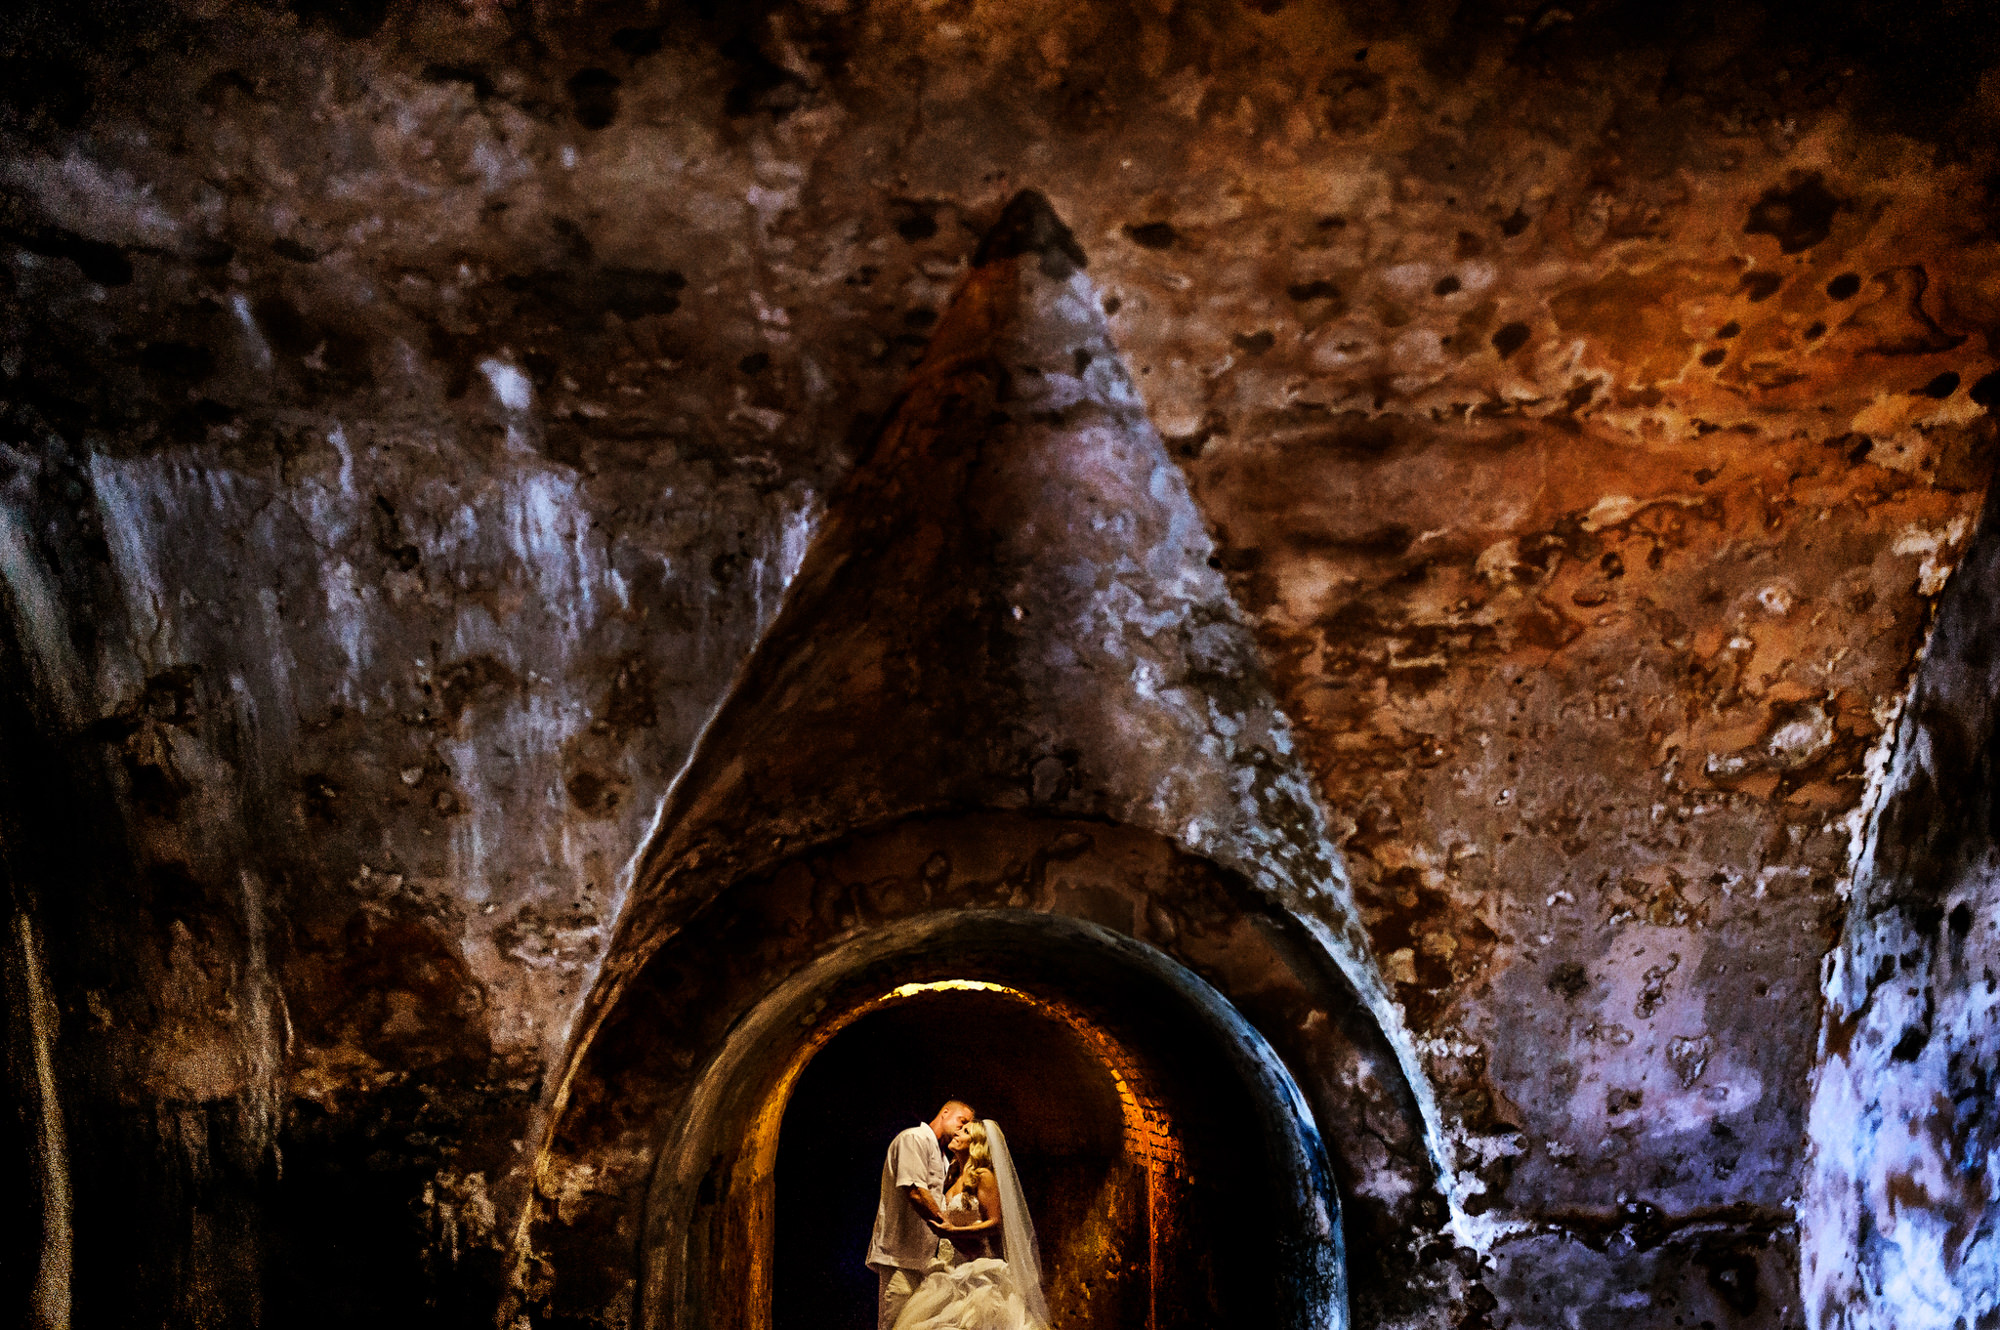 Couple framed in rustic ruins doorway, by Chrisman Studios